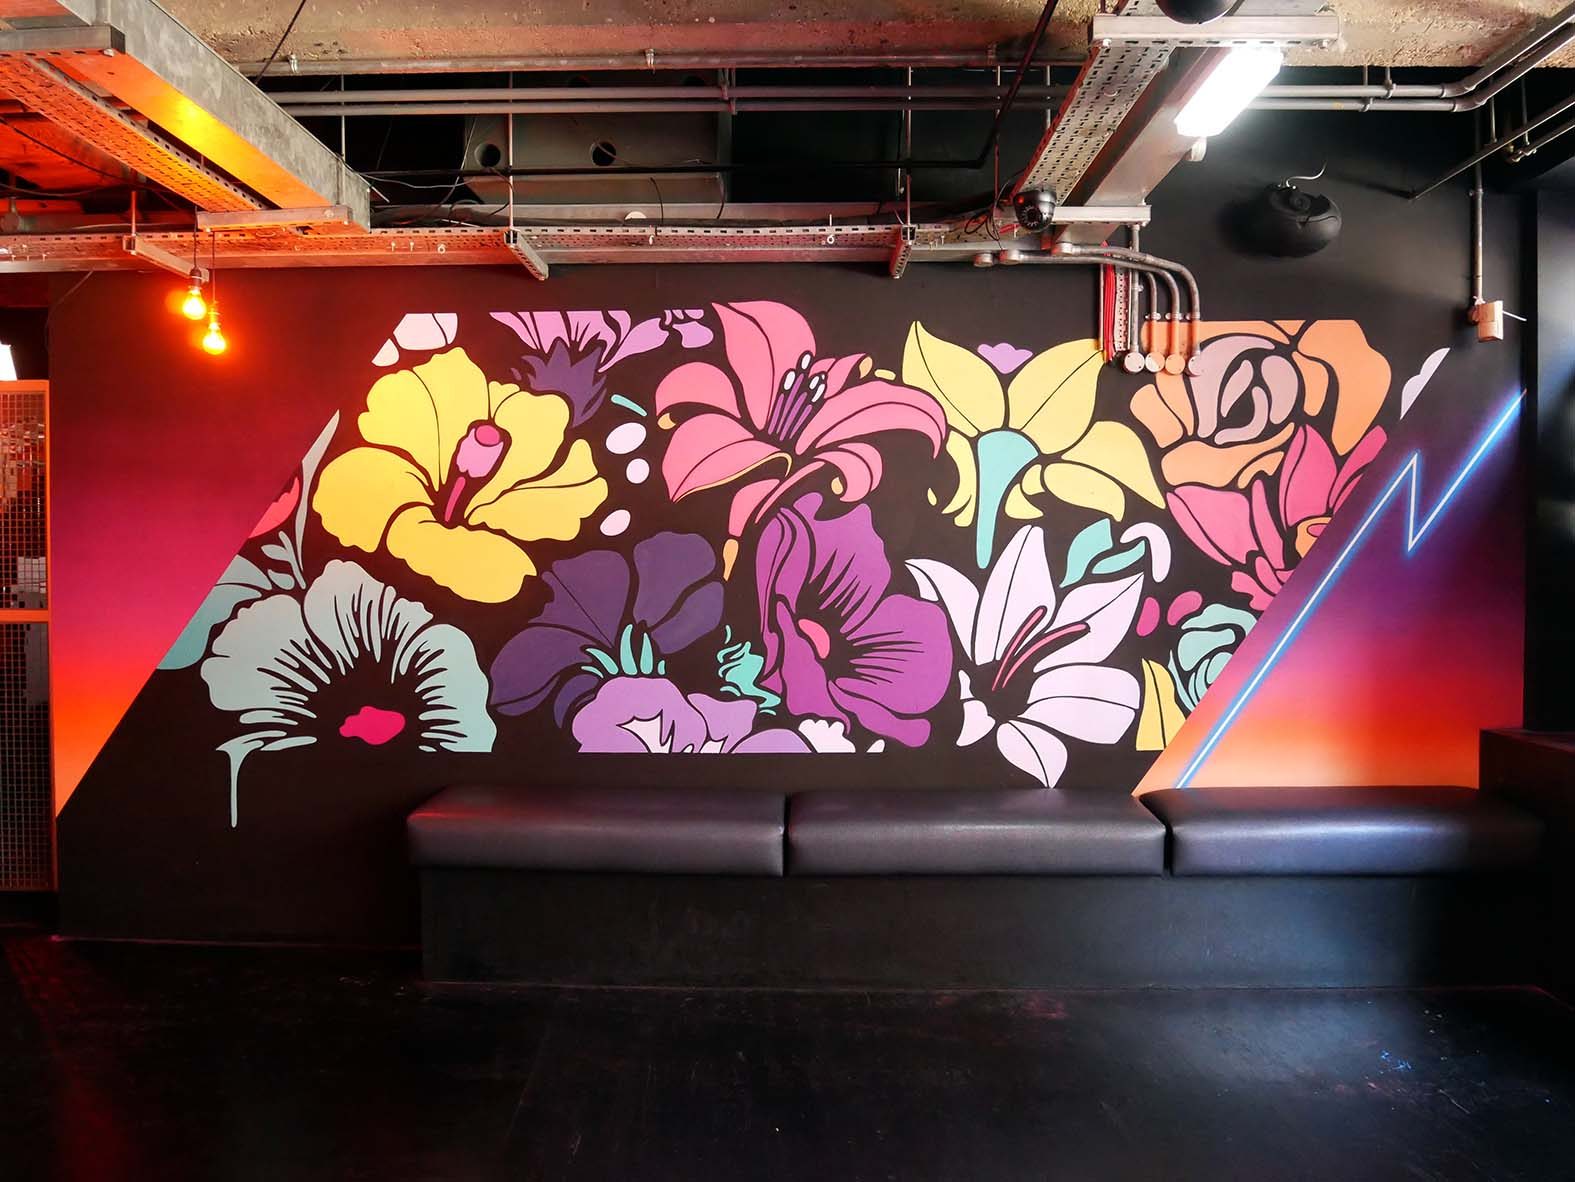 Nerone-queen-of-hoxton-painting-4